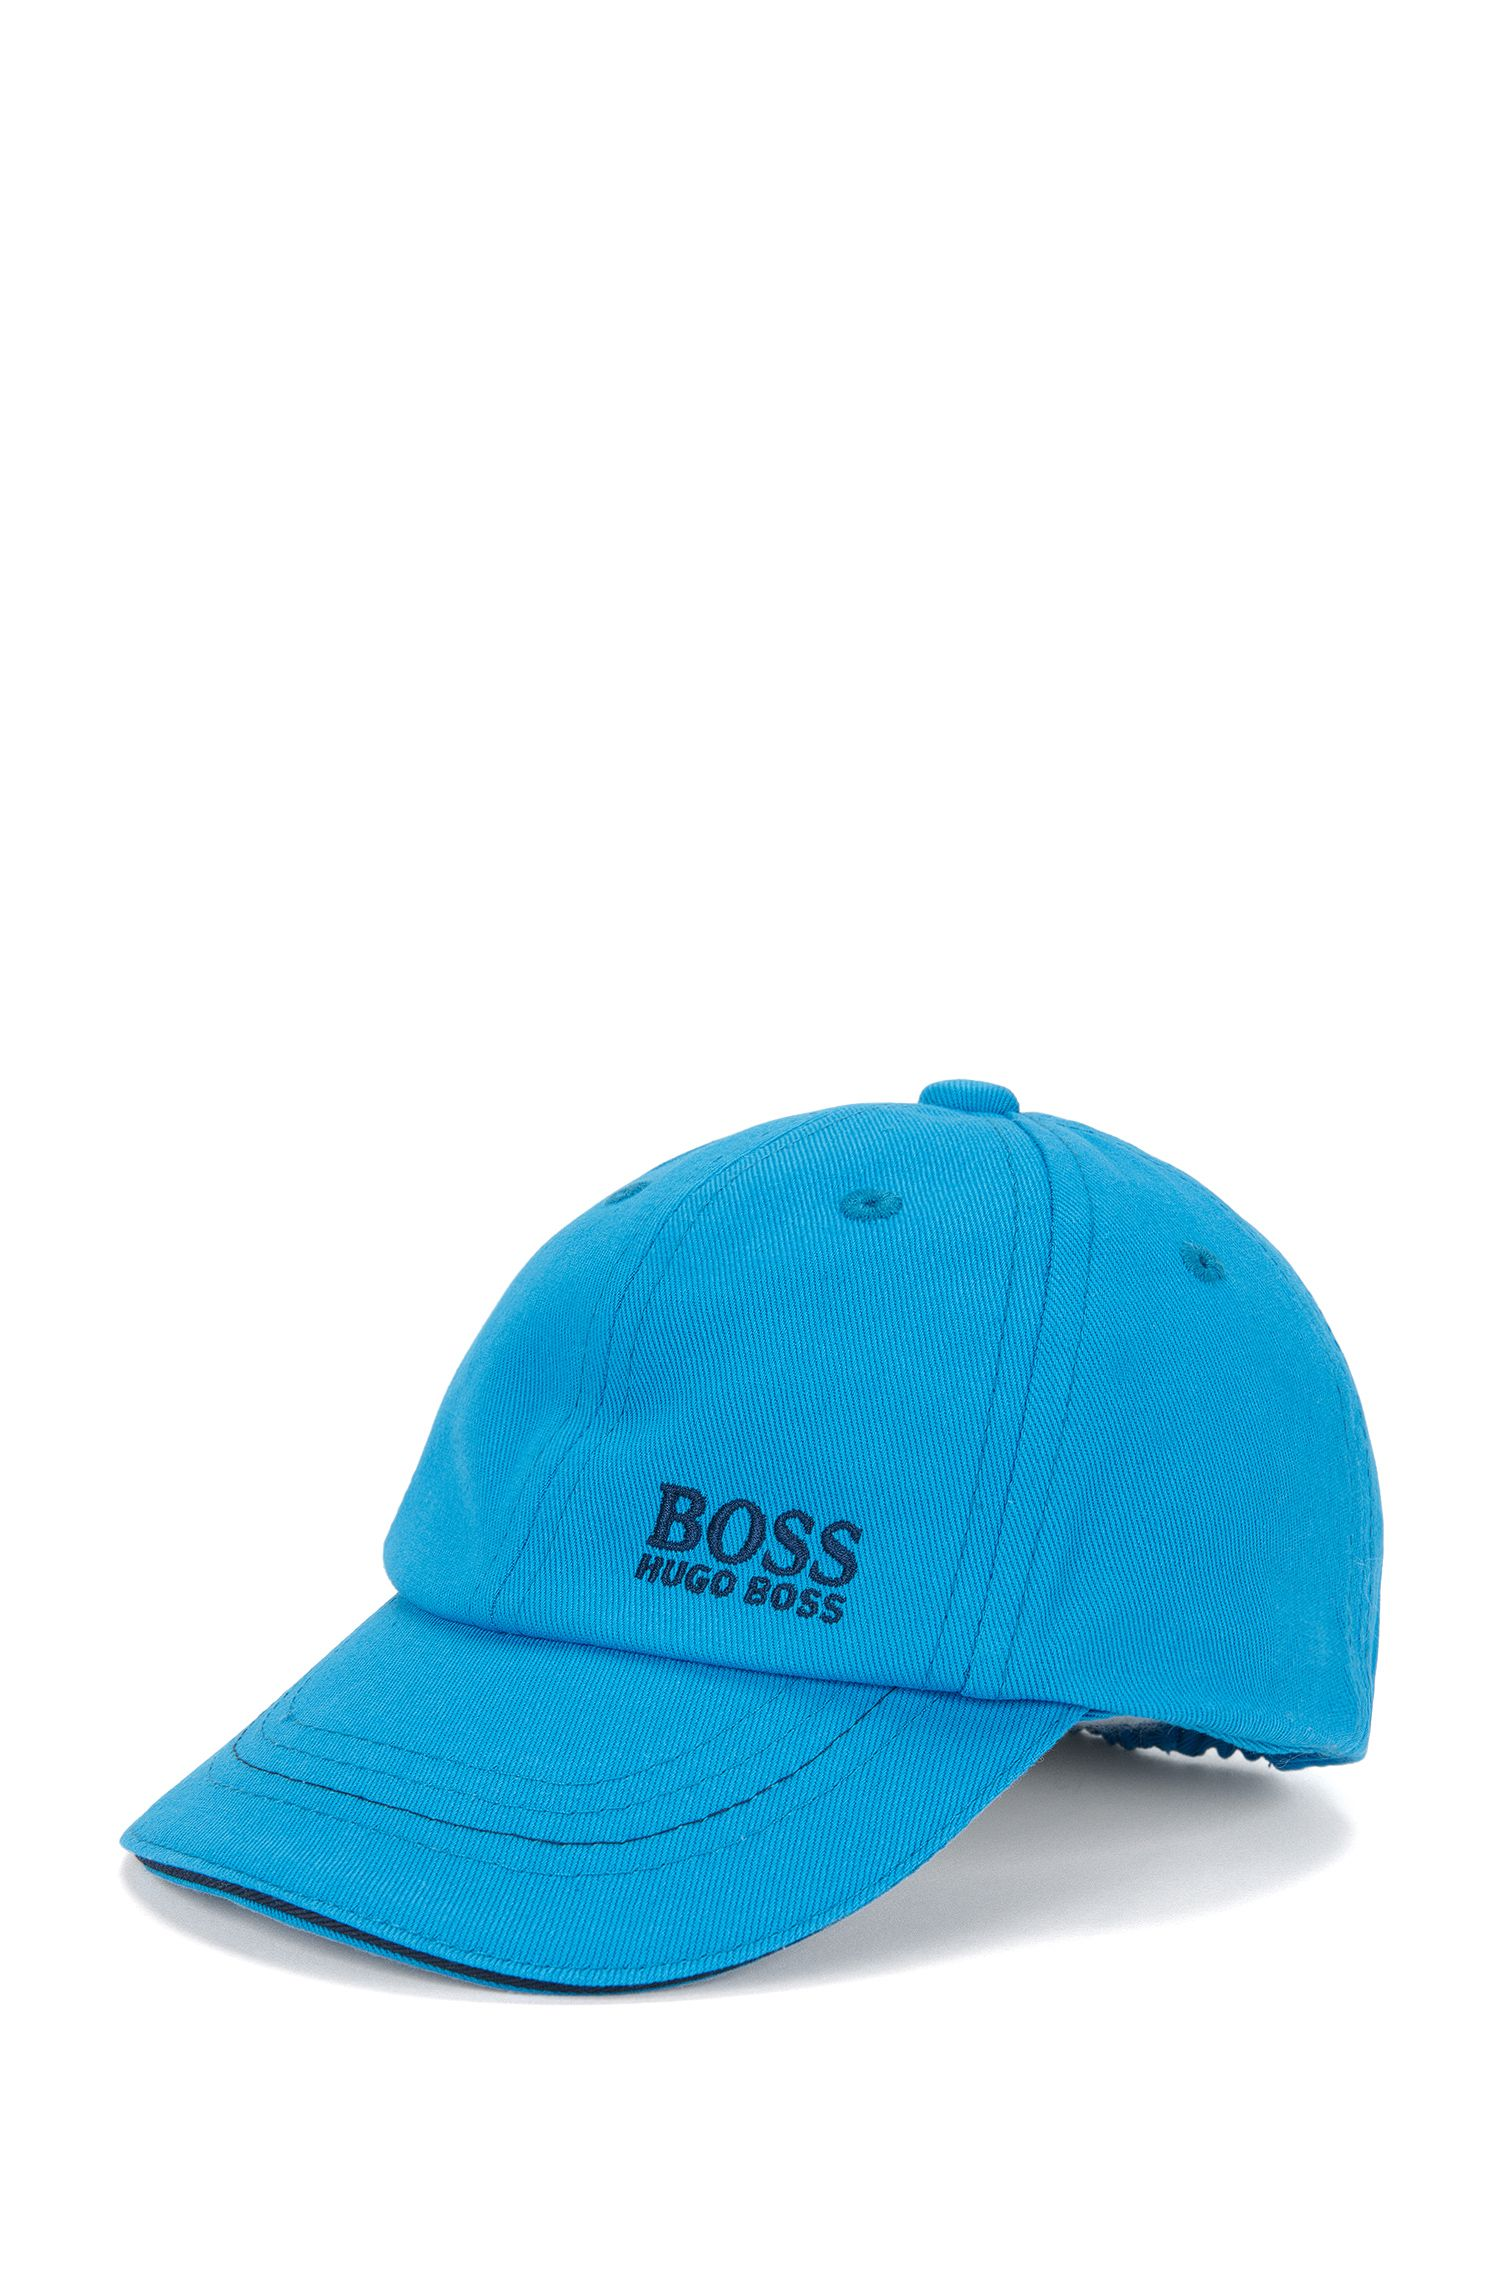 Kids' cap in cotton with an embroidered logo: 'J01074'